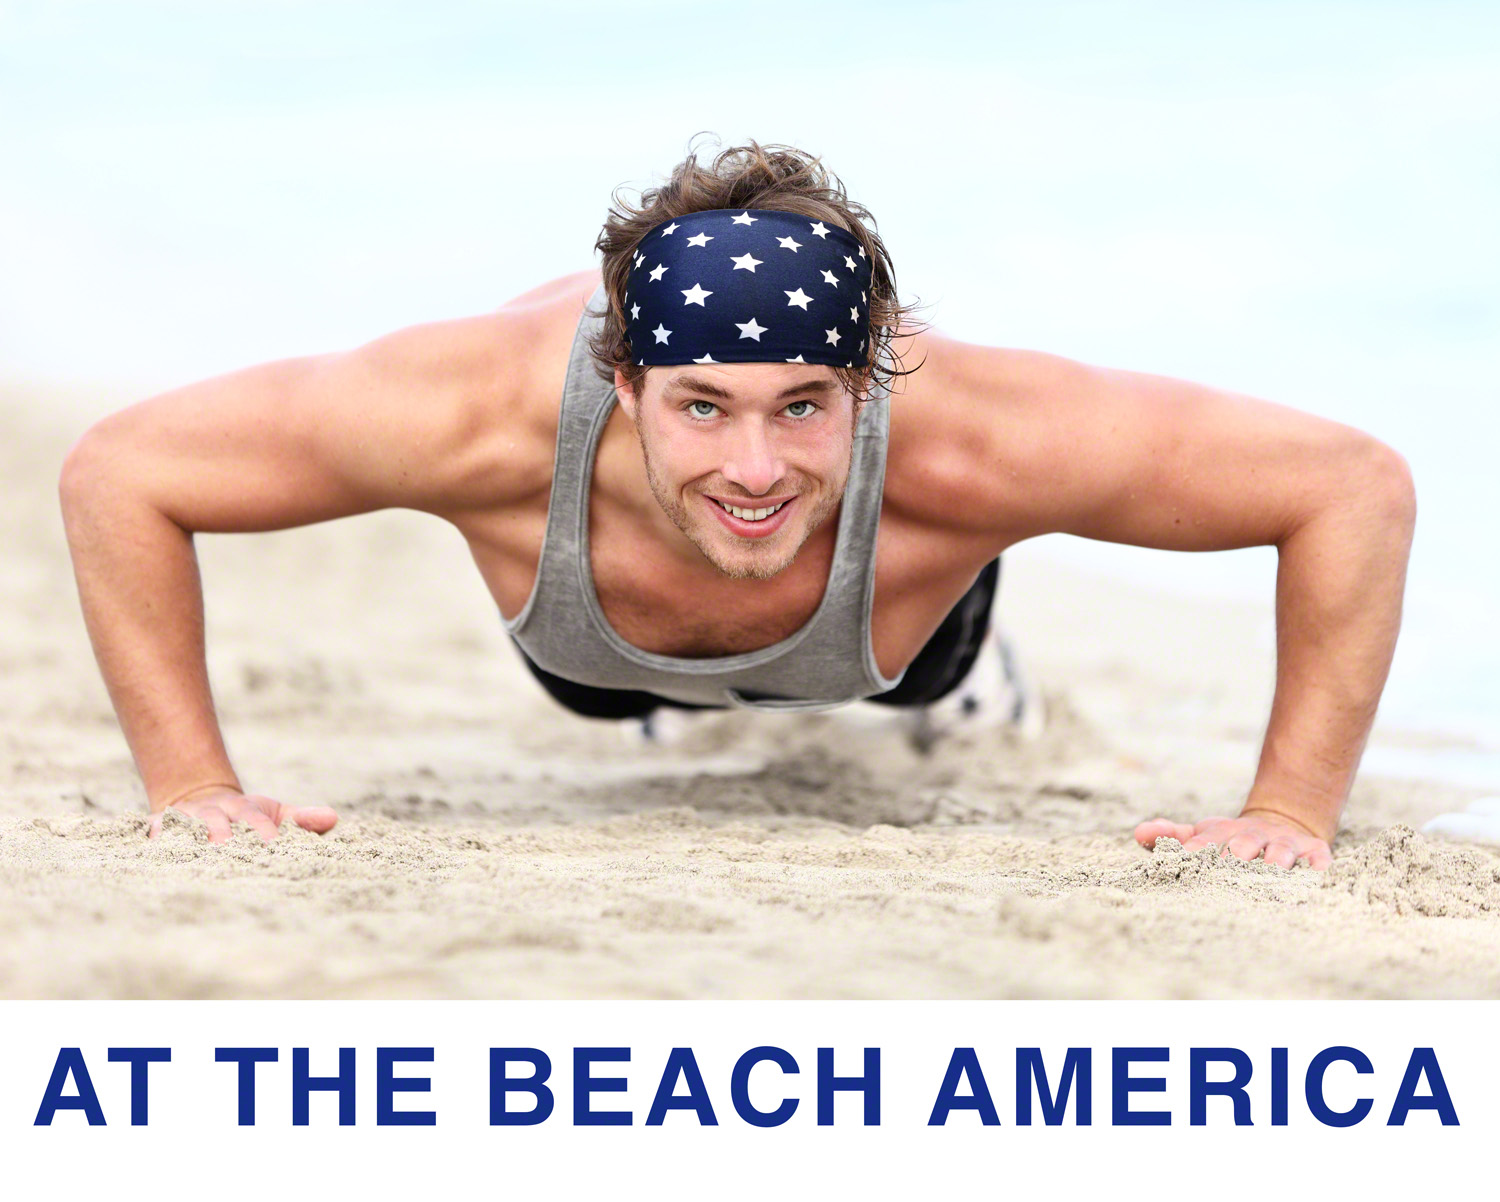 Men's  Running  At The Beach America Workout Headband - can also use as Sweatband for its superior Absorption .